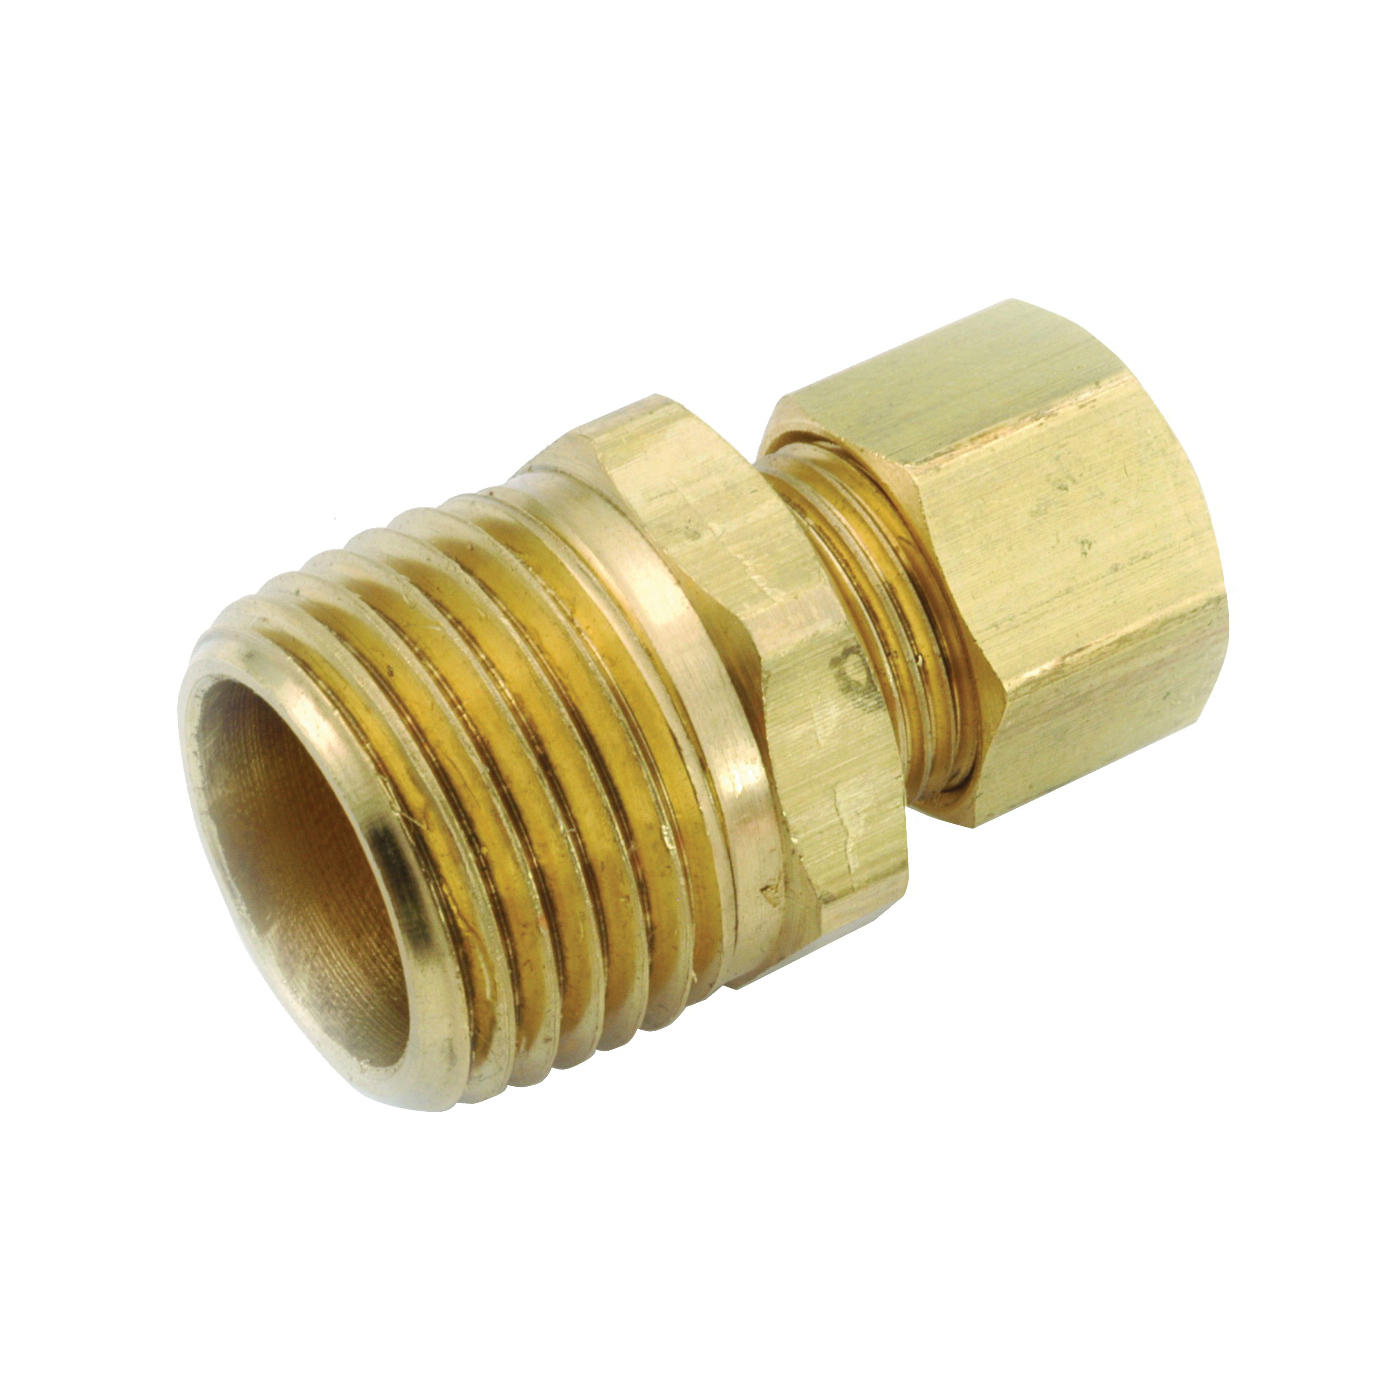 Picture of Anderson Metals 750068-1012 Connector, 5/8 in Compression, 3/4 in MPT